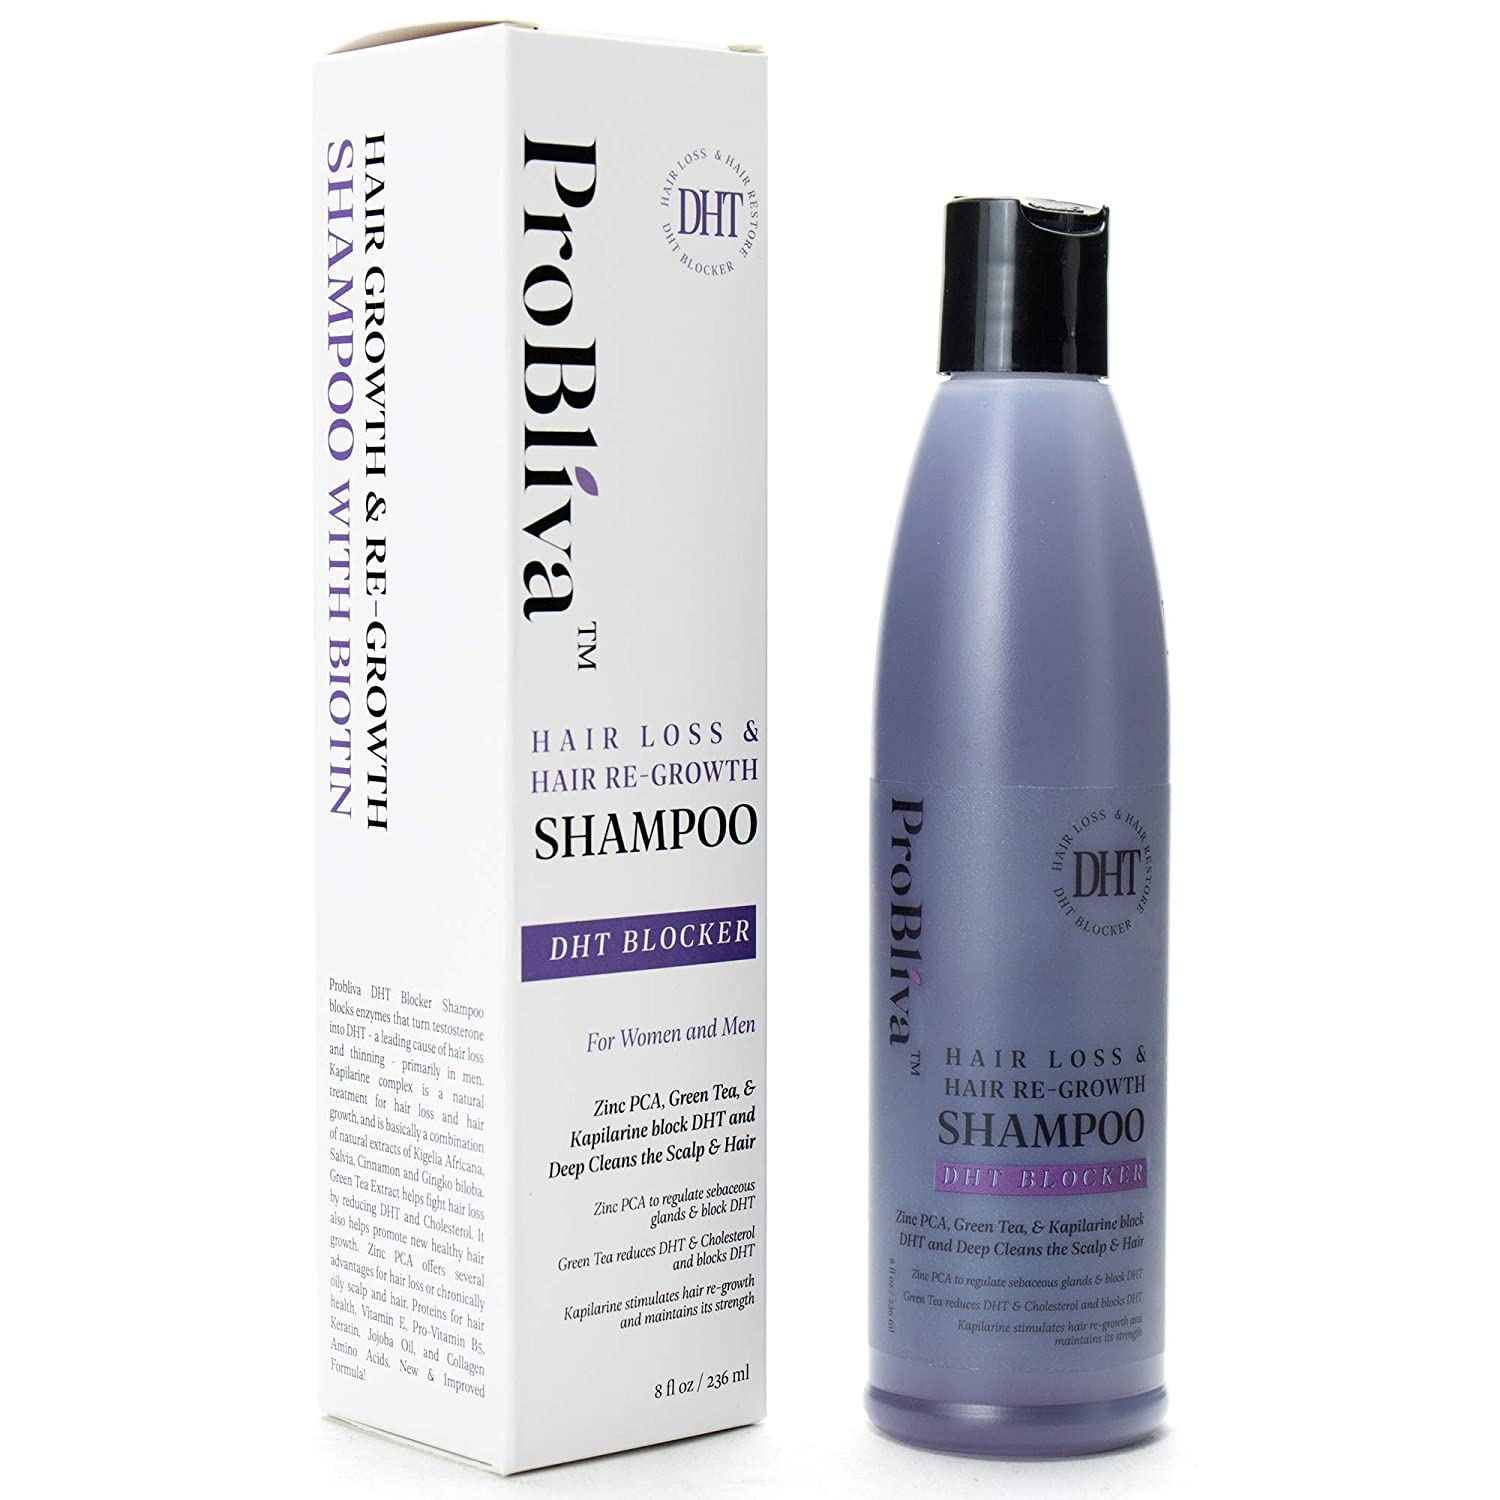 ProBliva DHT Blocker Hair Loss & Hair Re-Growth Shampoo - DHT Blocker for Men and Women